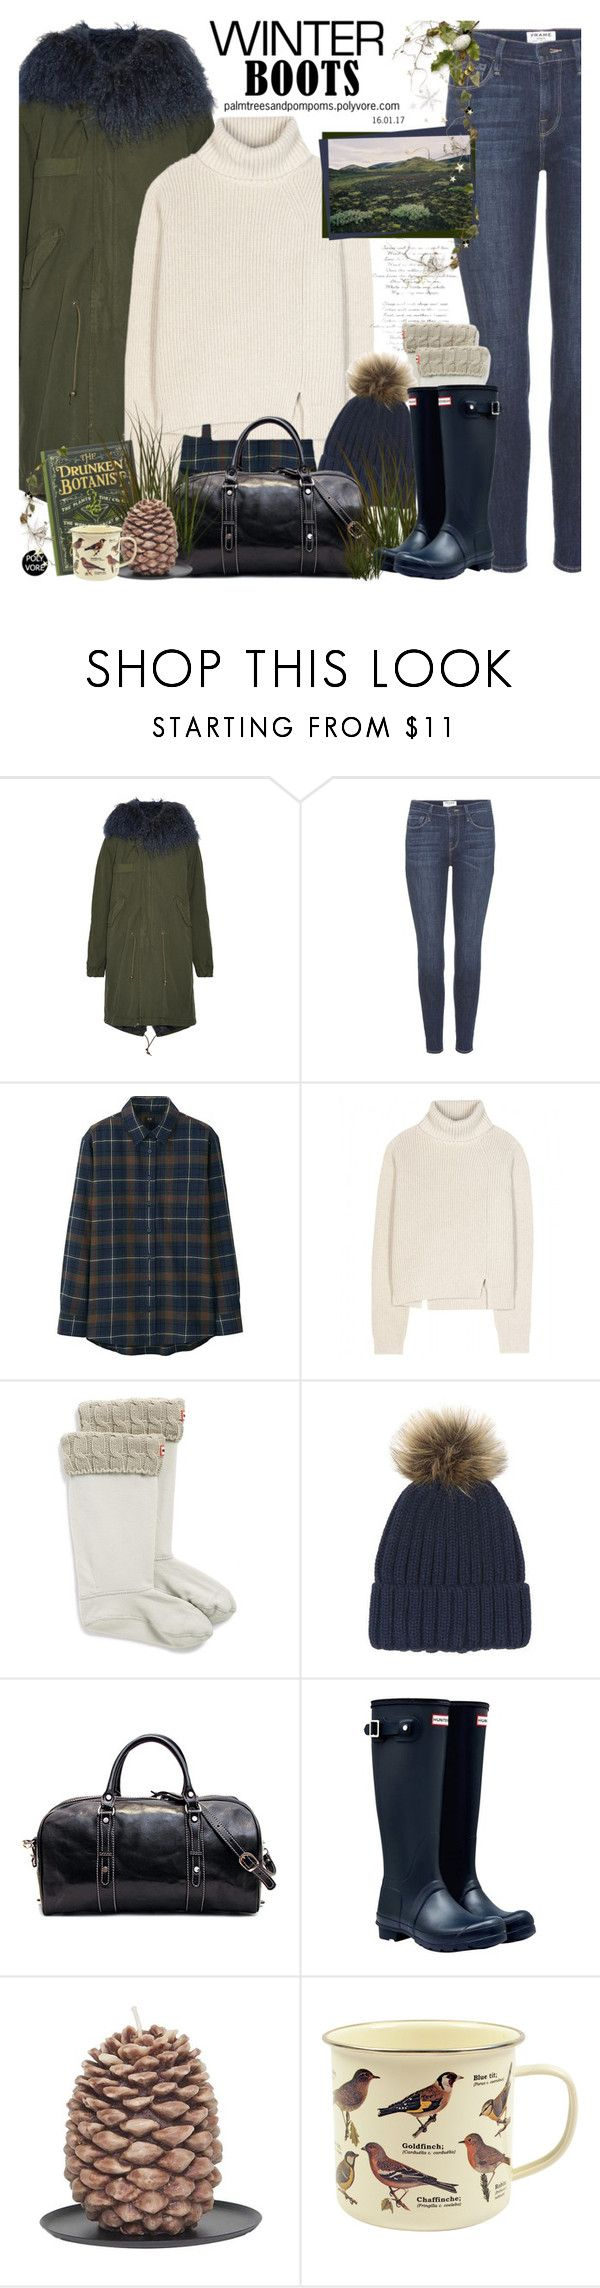 """""""So Cozy: Winter Boots / Hunter Original Tall Wellington Boots"""" by palmtreesandpompoms ❤ liked on Polyvore featuring Mr & Mrs Italy, Frame, Uniqlo, Proenza Schouler, Hunter, Warehouse, Aspen Bay, Dot & Bo, country and uniqlo"""